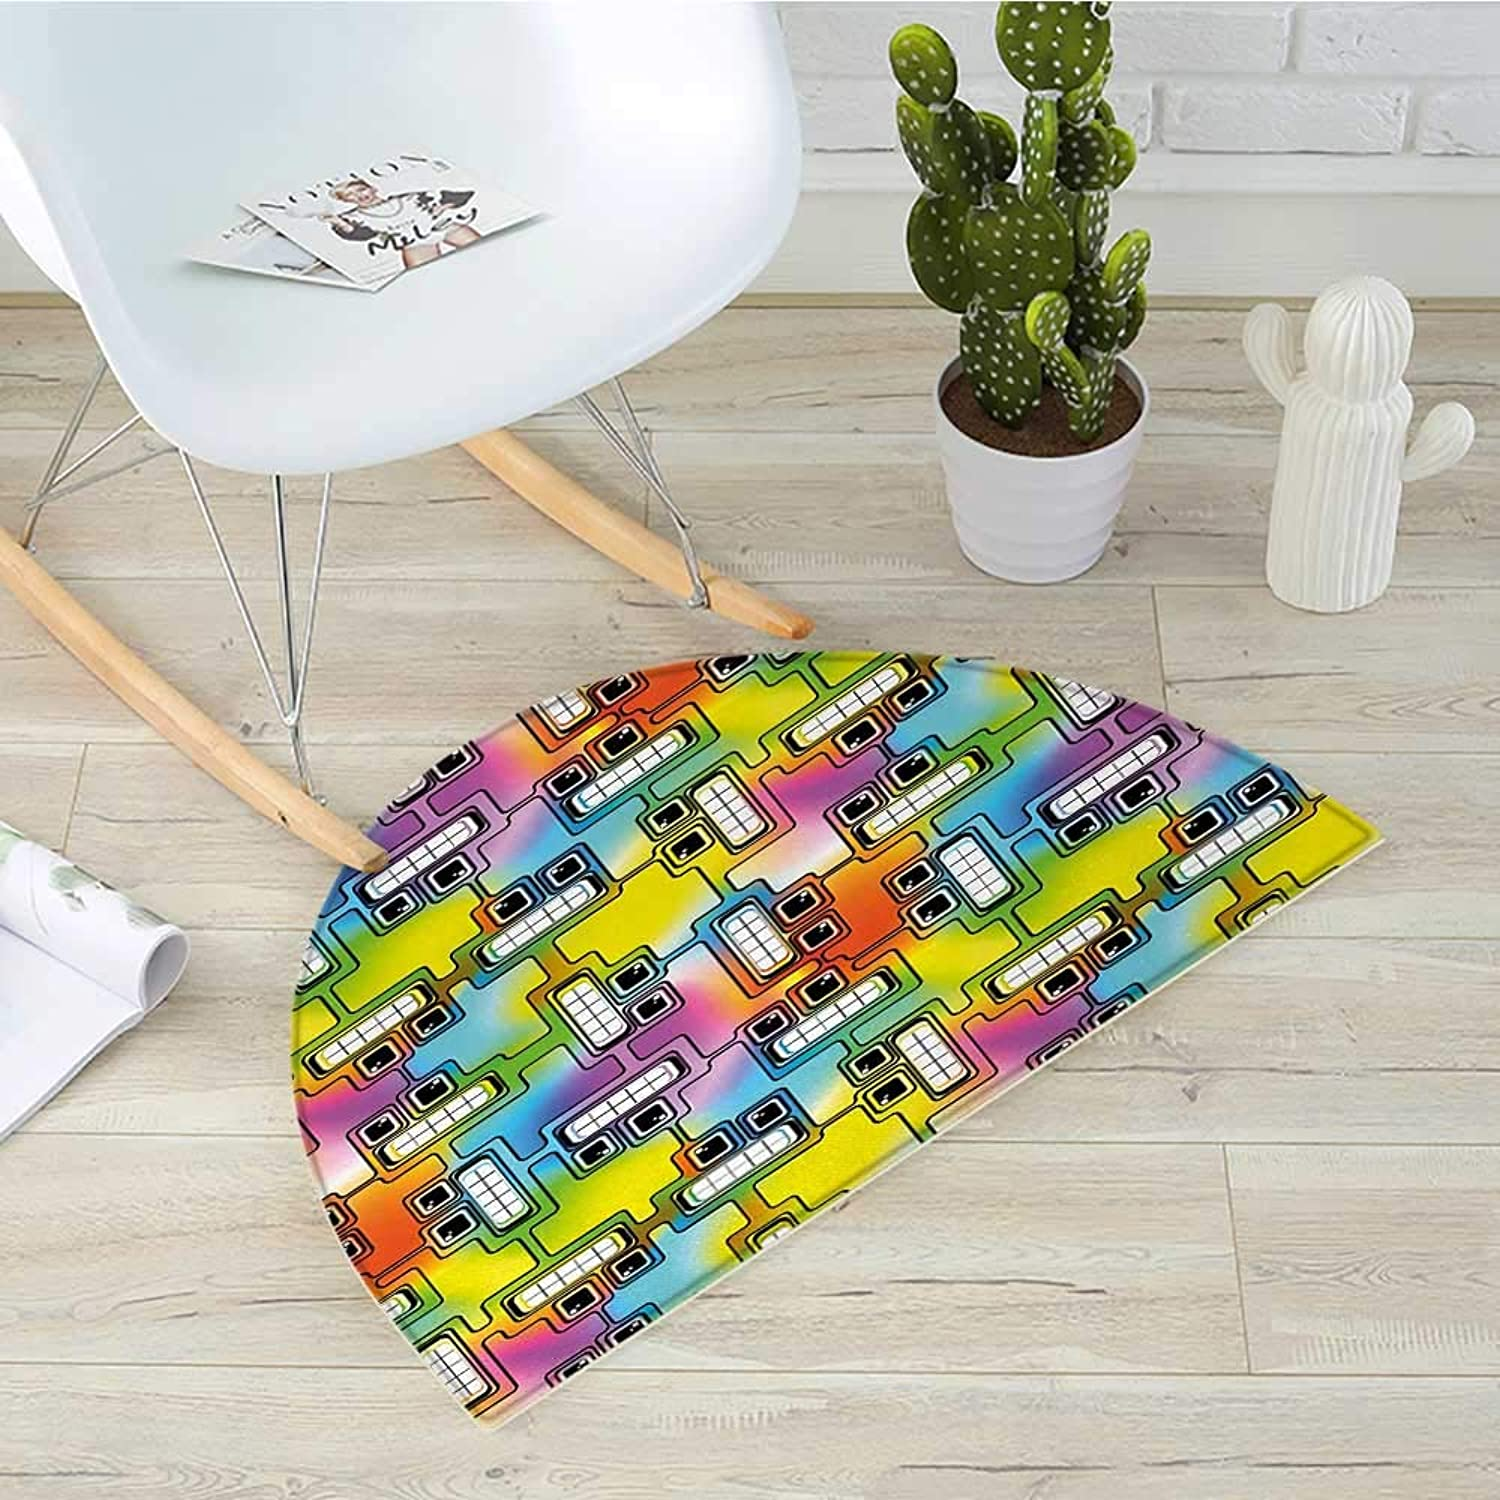 colorful Half Round Door mats Hippie Digital Fun Characters with Eyes and Teeth Video Games Artwork Pattern Bathroom Mat H 23.6  xD 35.4  Multicolor